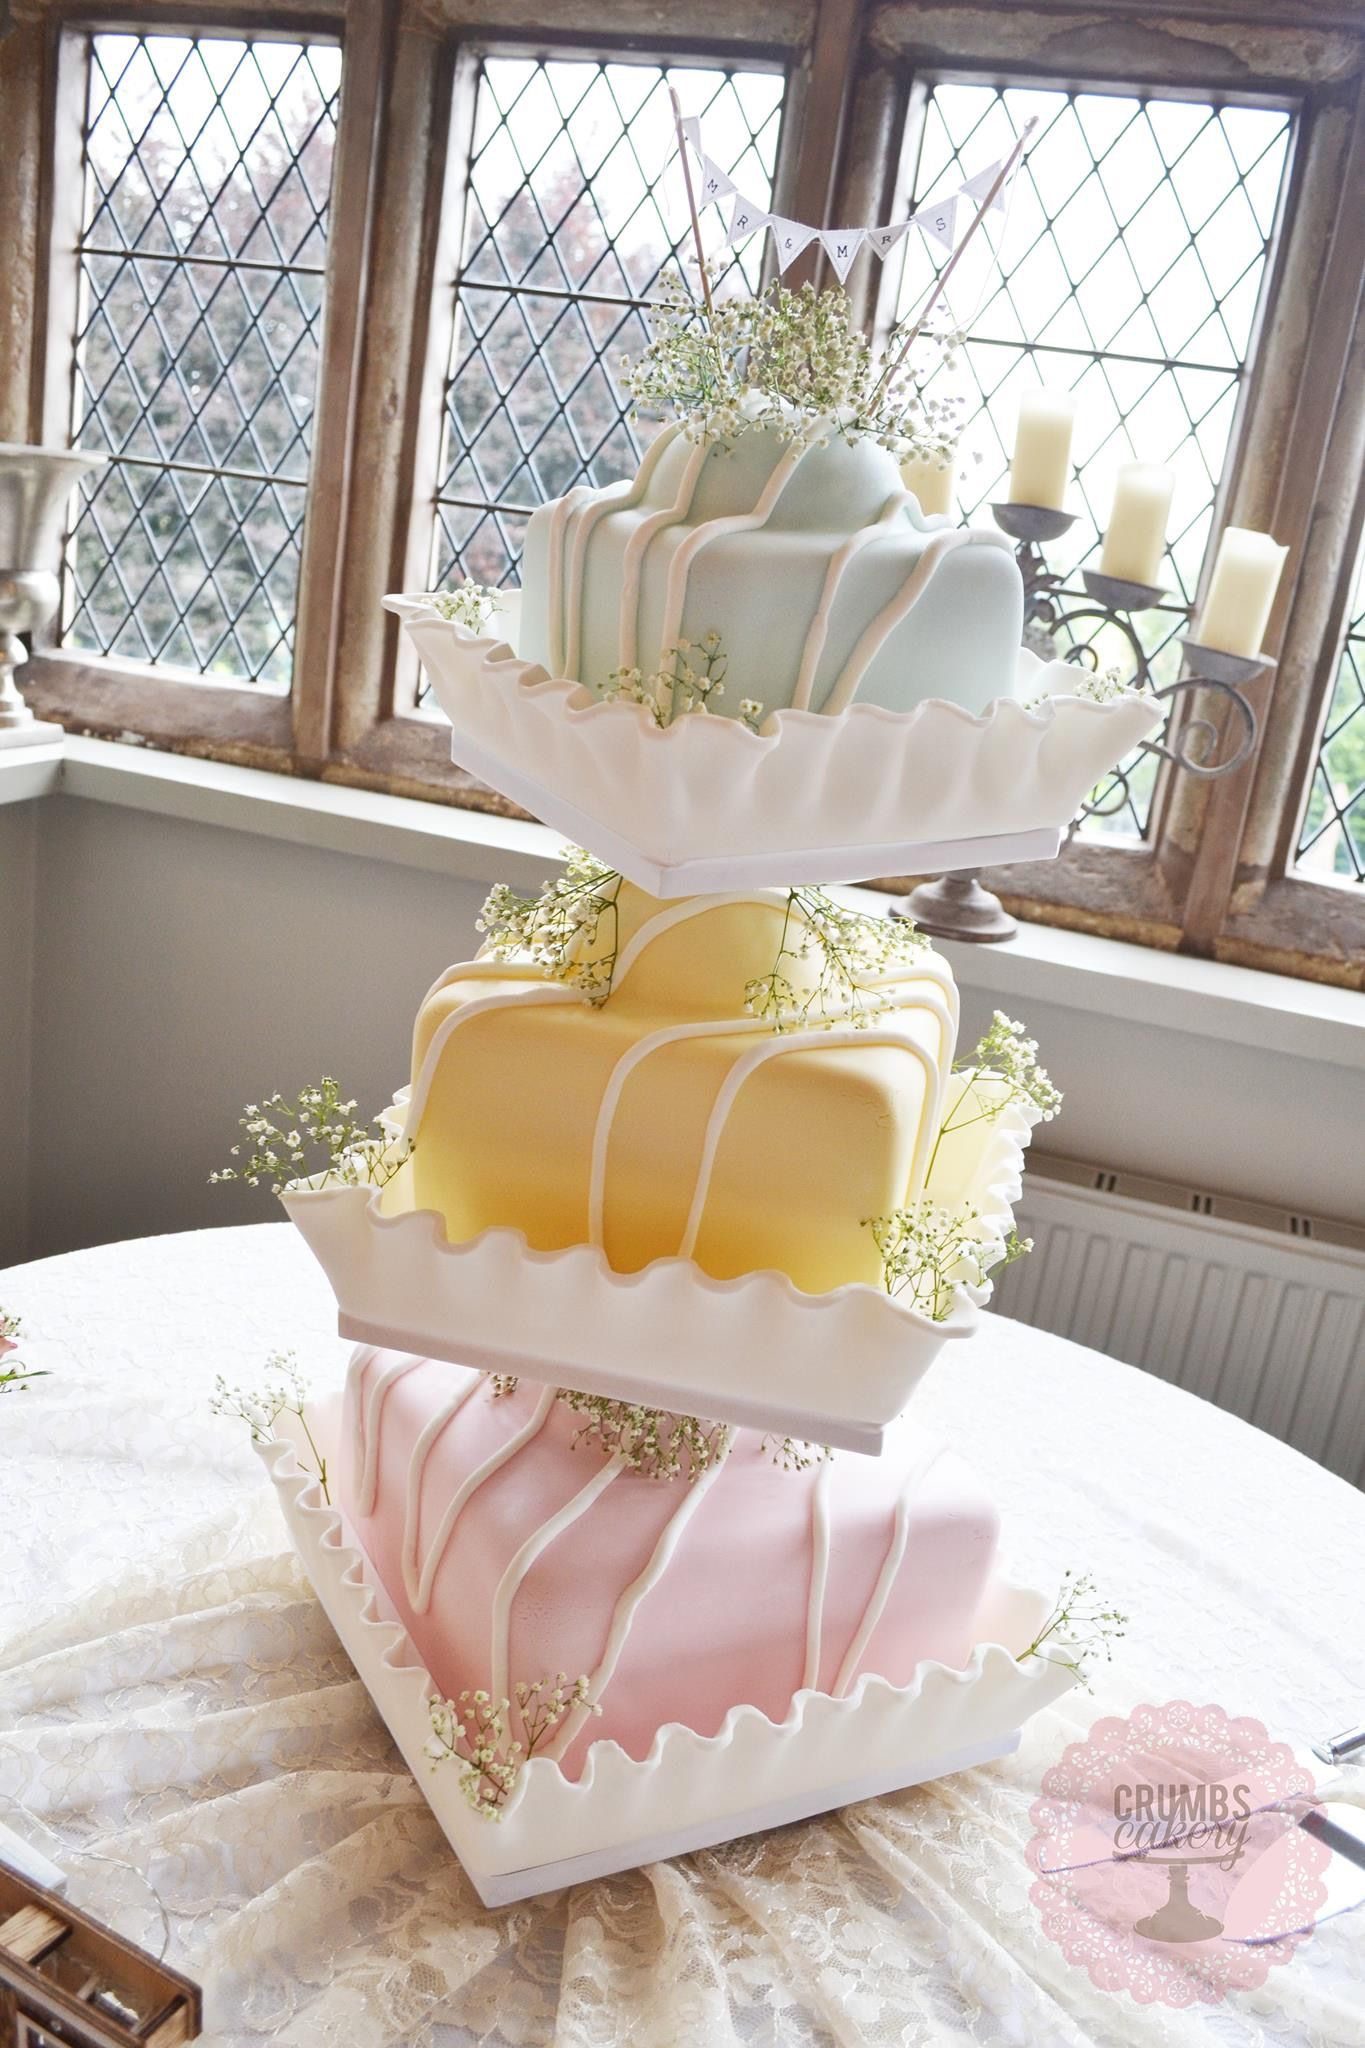 how to make fondant fancy wedding cake fancy wedding cake www crumbscakery co uk wedding 15934